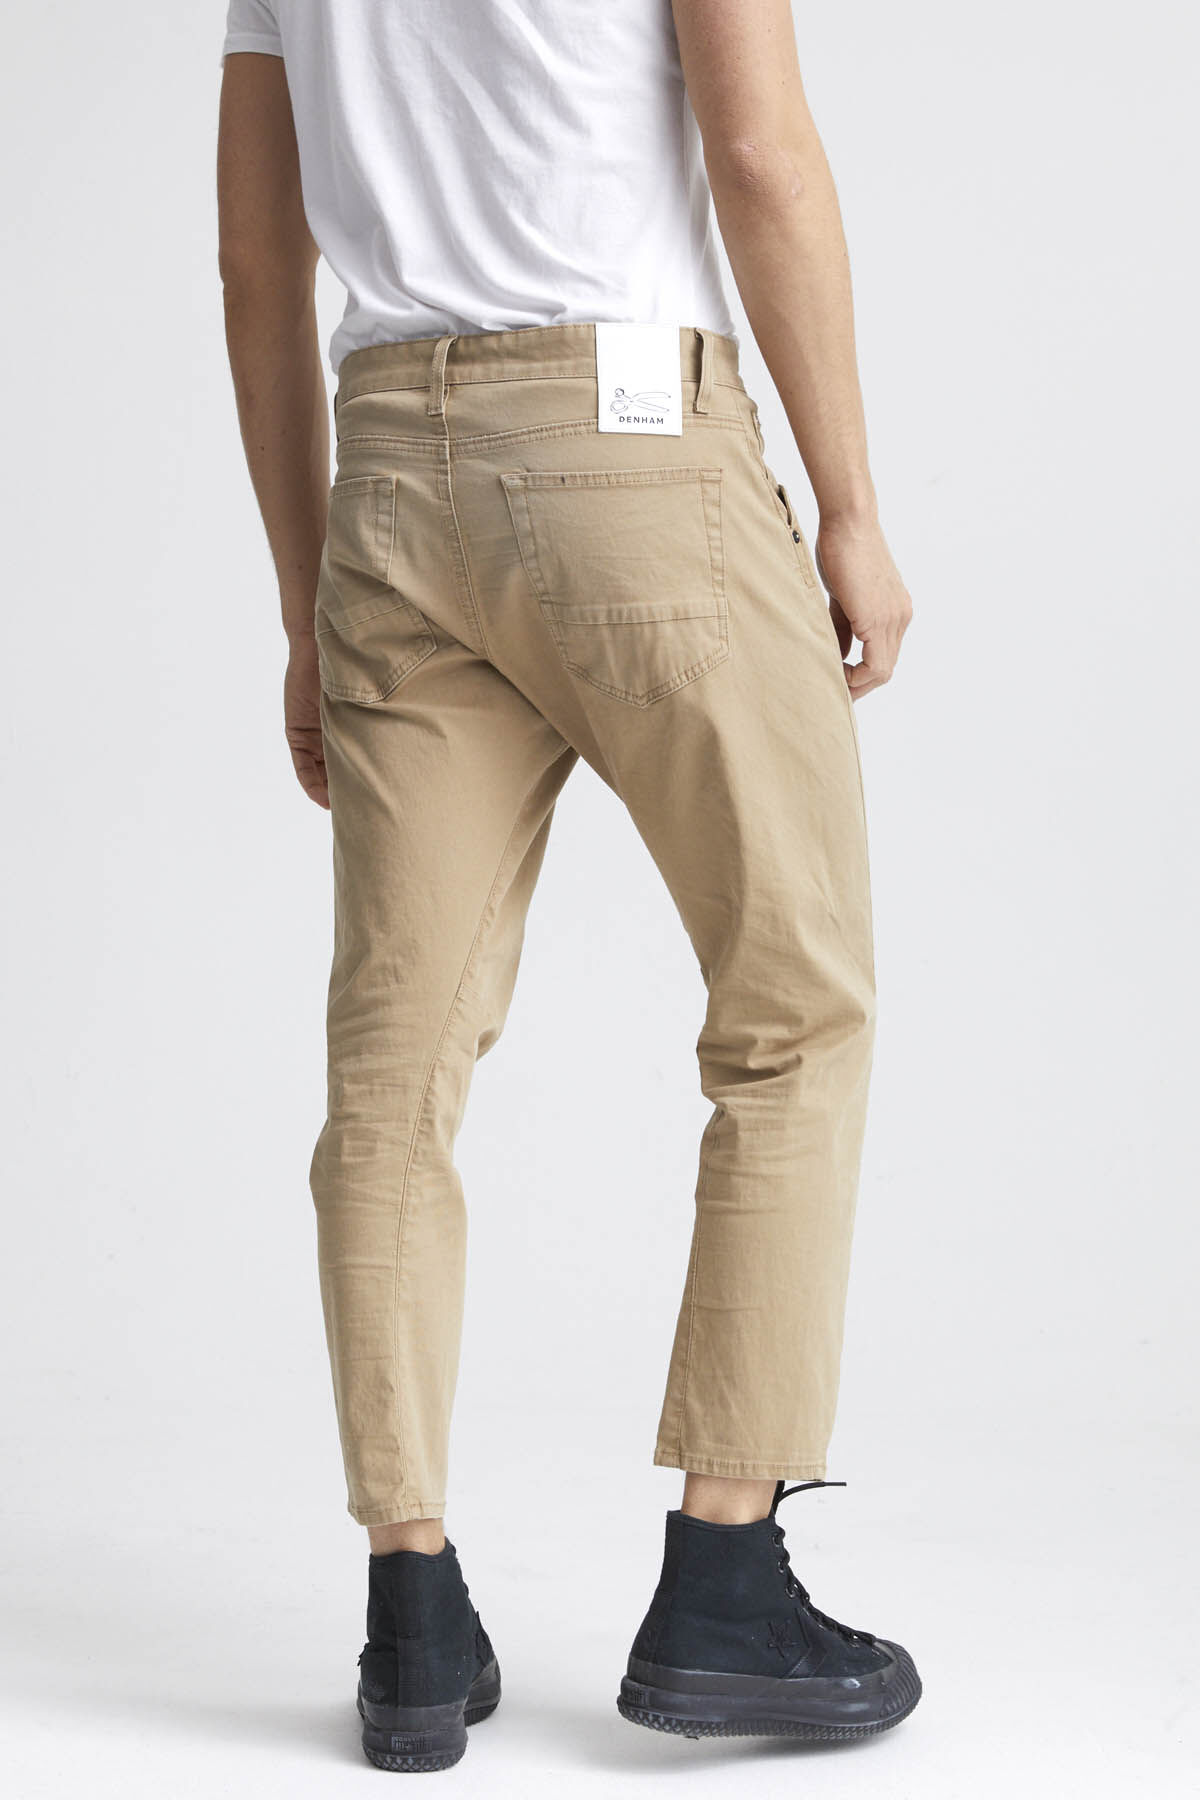 FUSION Garment Dyed Chino - Tapered Fit